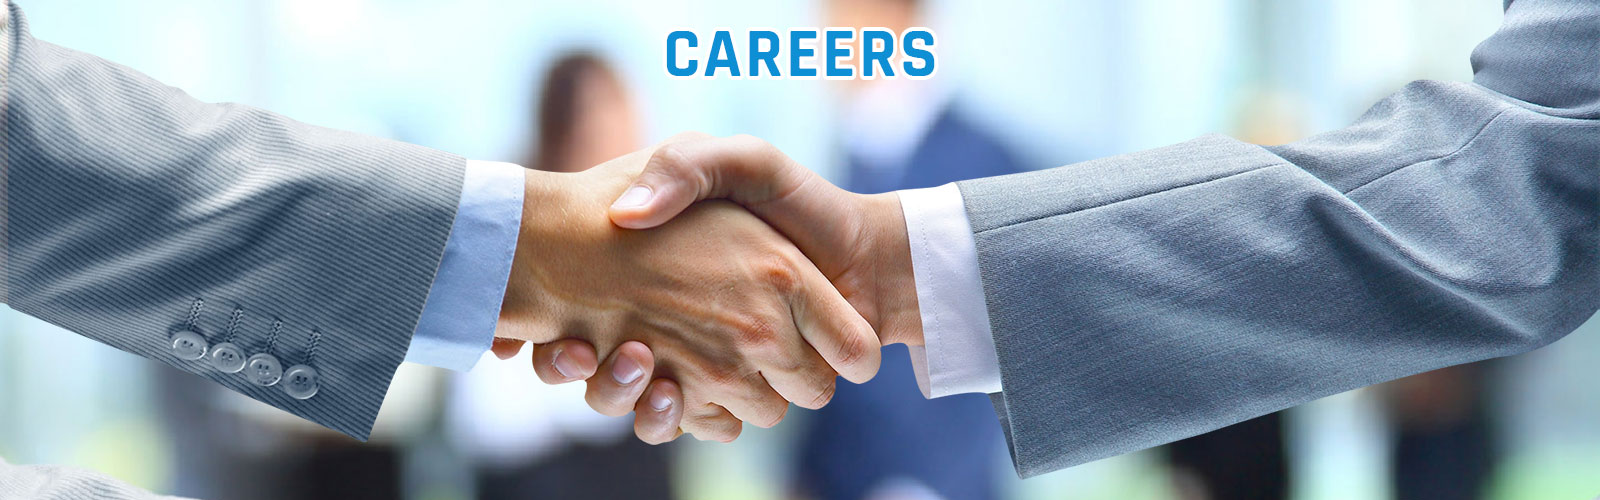 Careers Banner